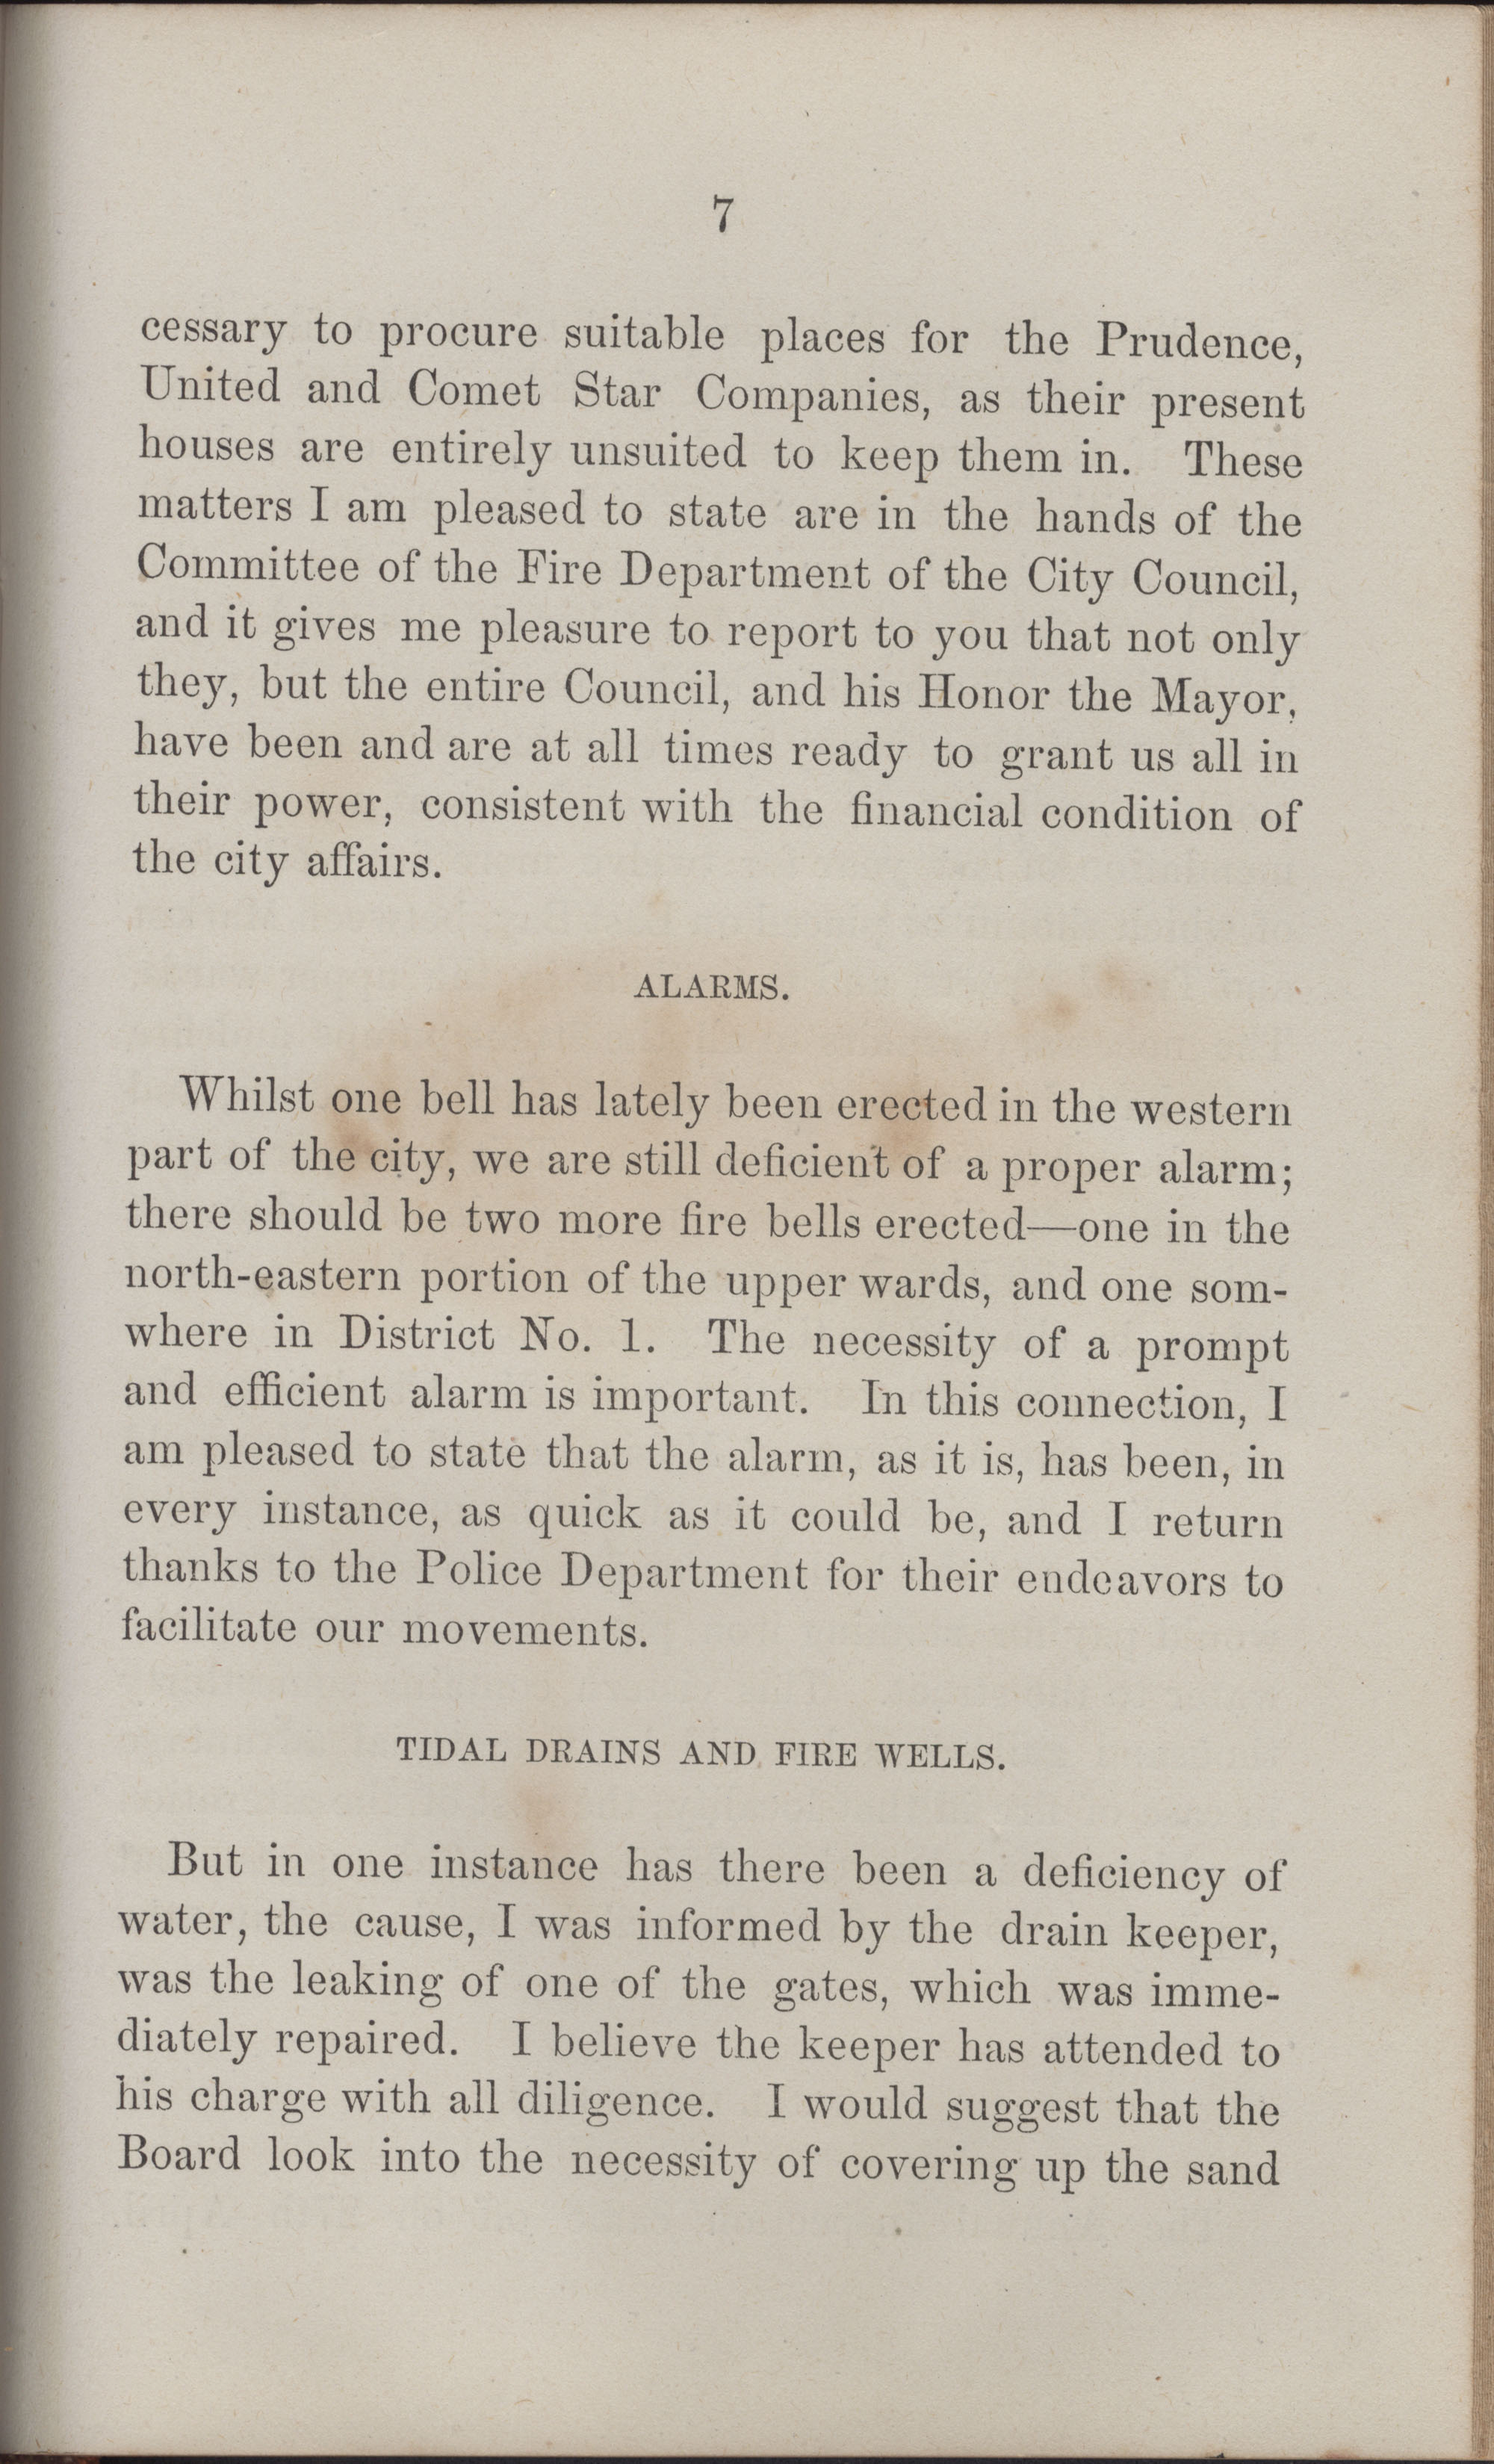 Annual Report of the Chief of the Fire Department of the City of Charleston, page 402